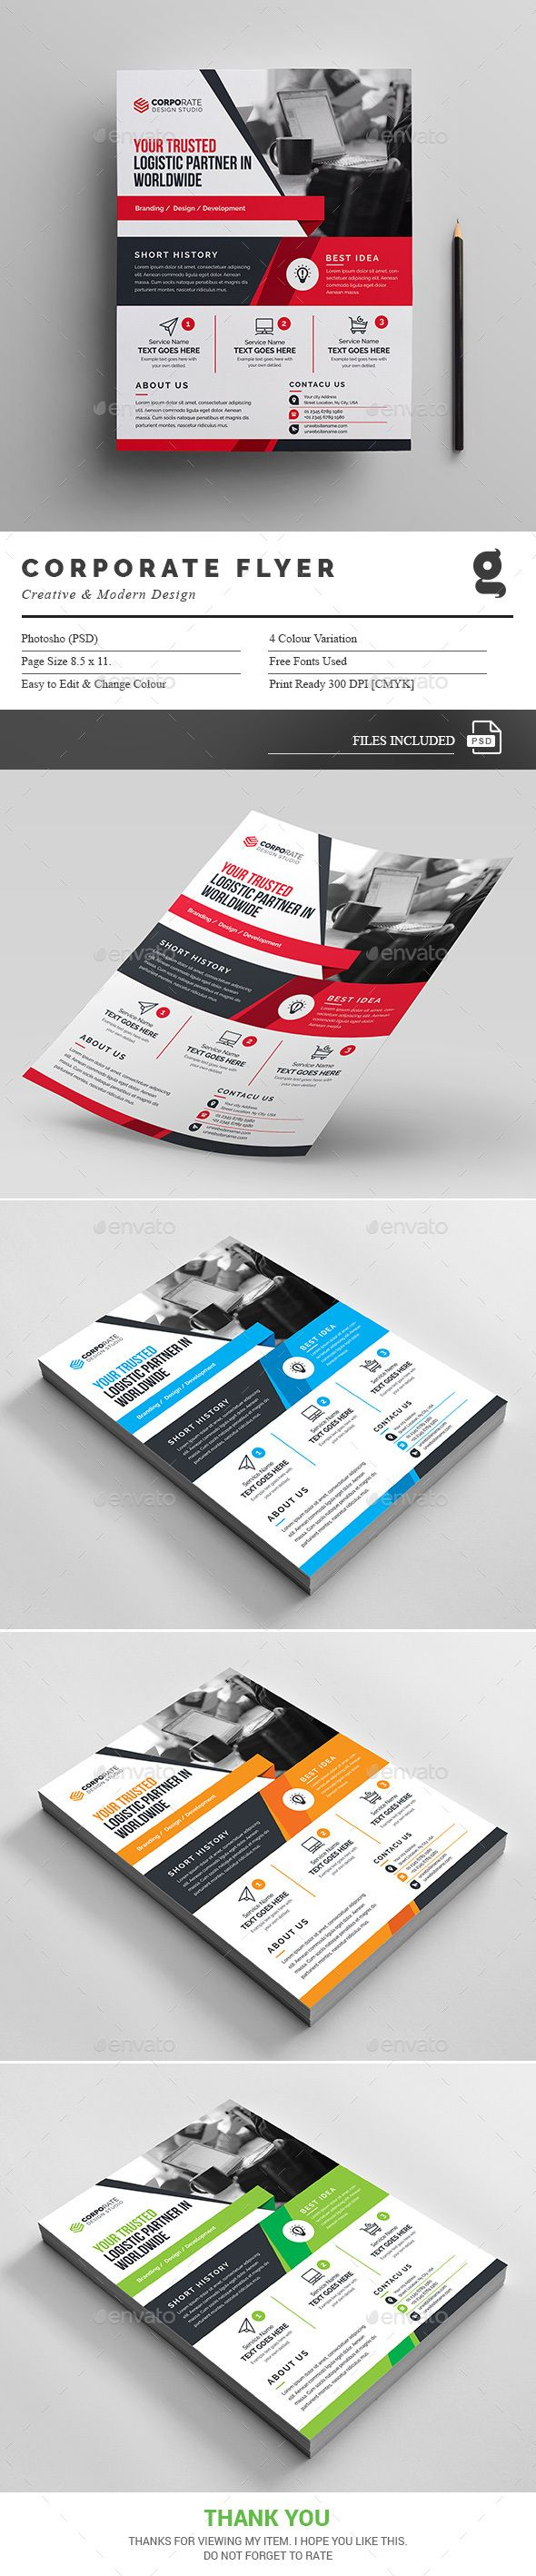 Corporate Modern Flyer Design - Modern Flyers Template PSD. Download here: https://graphicriver.net/item/creative-flyers/16932988?s_rank=50&ref=yinkira